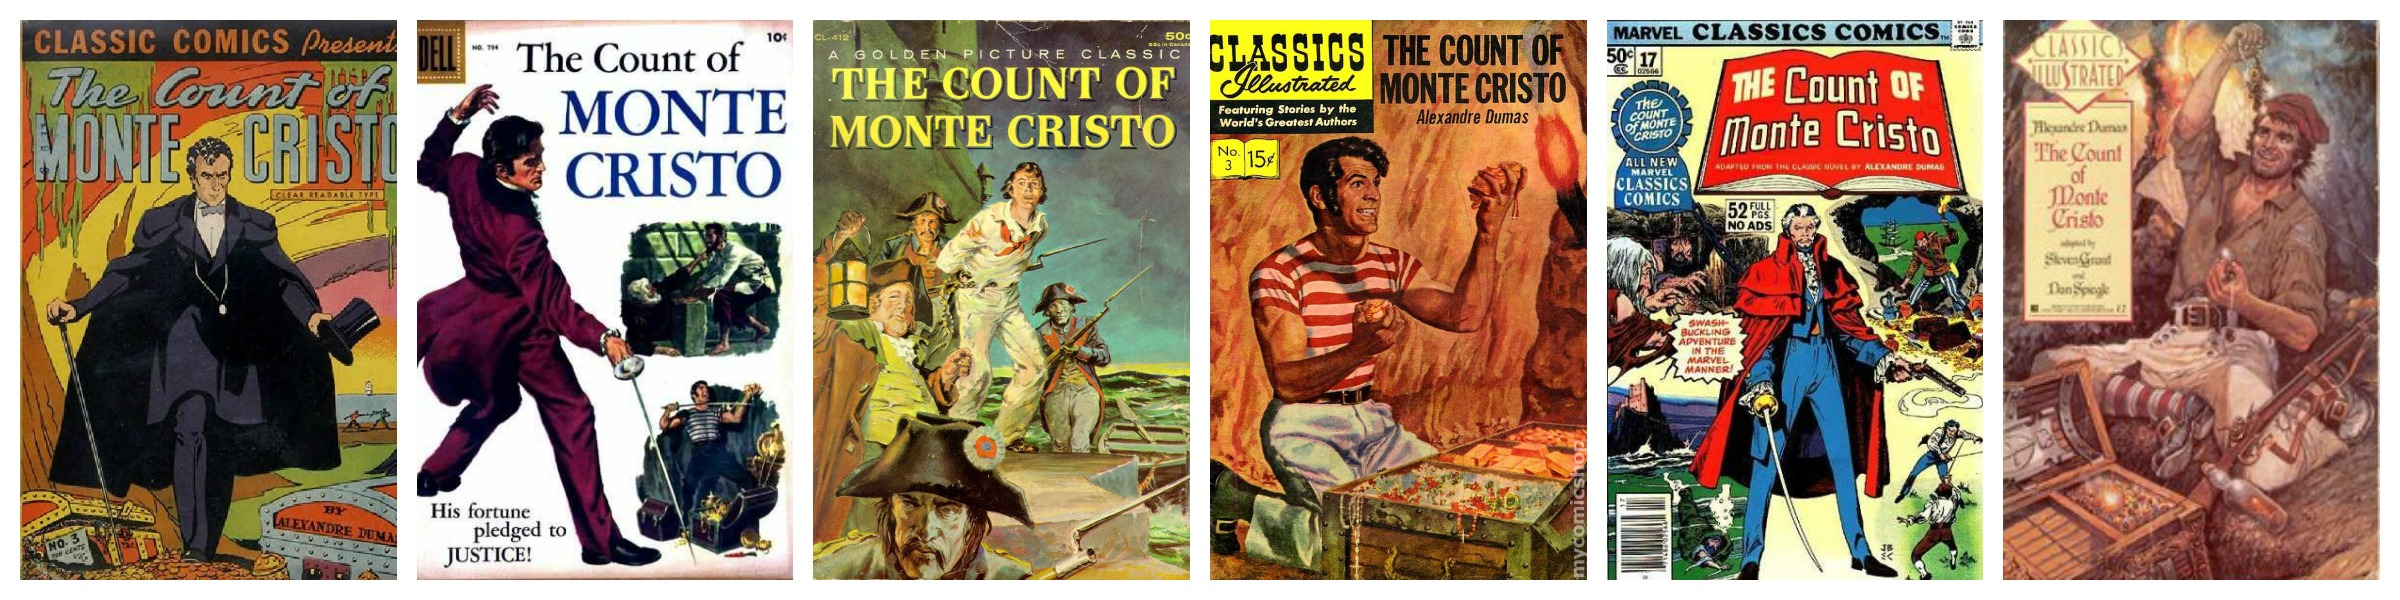 The Count of Monte Cristo Covers 6